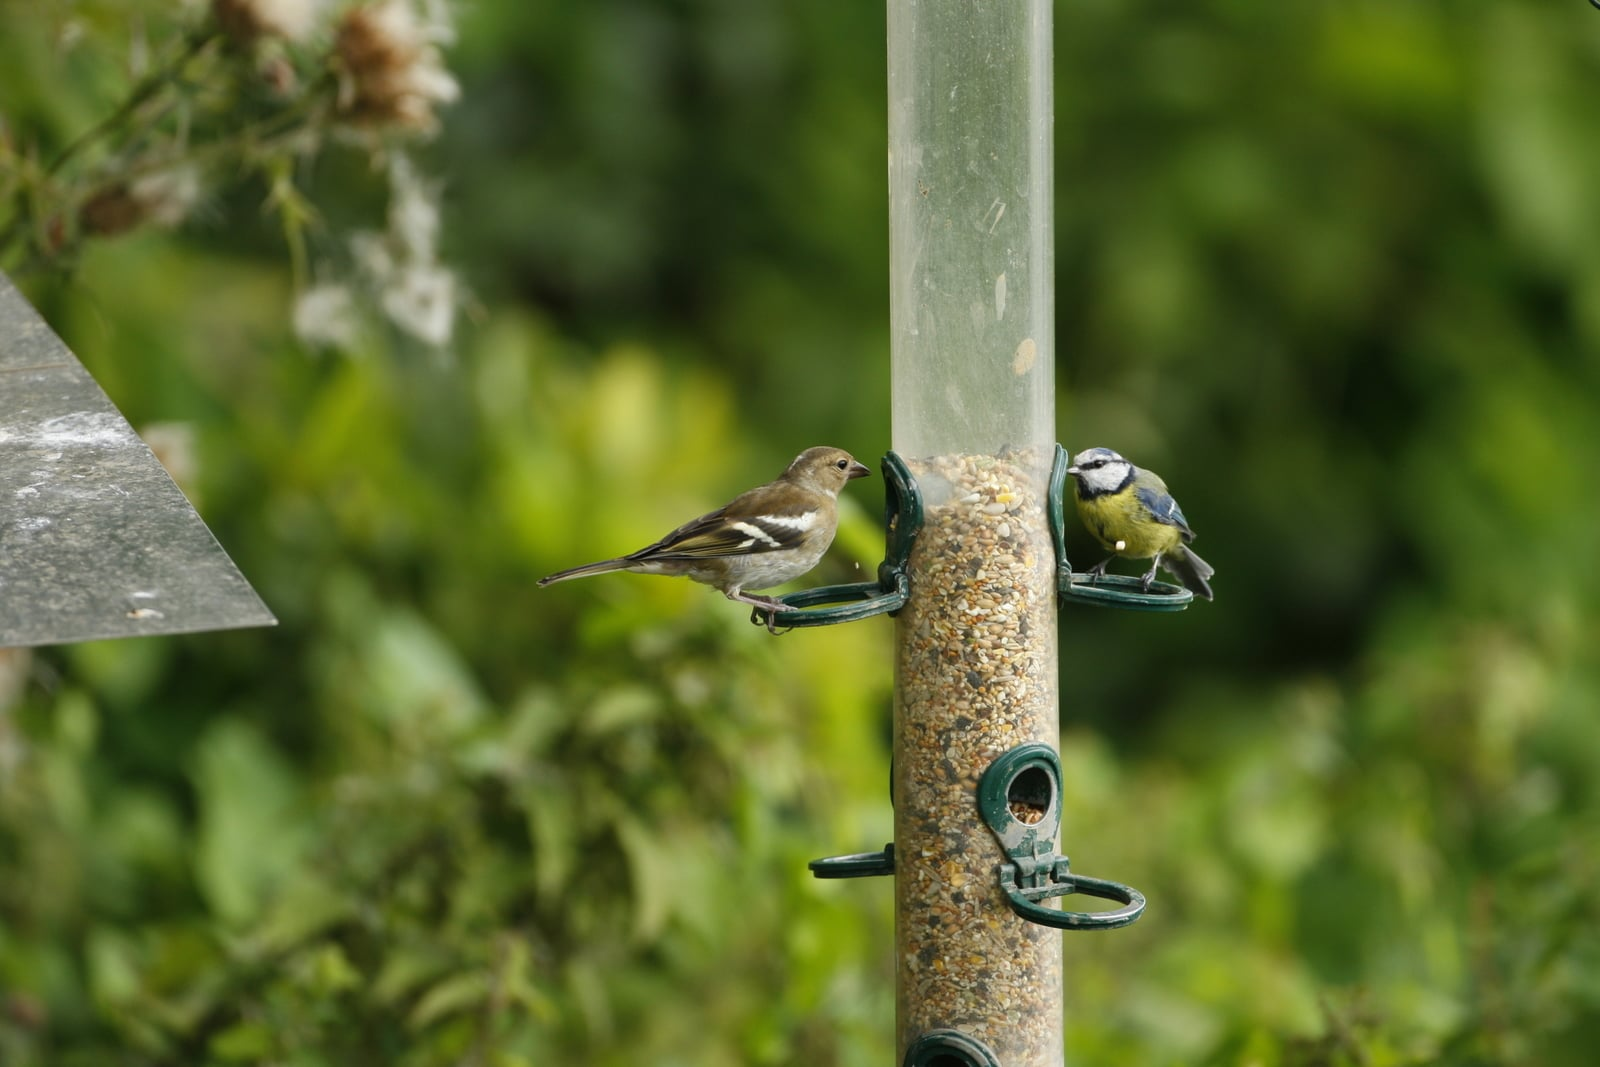 Birds on a feeder - wildlife gardening for birds